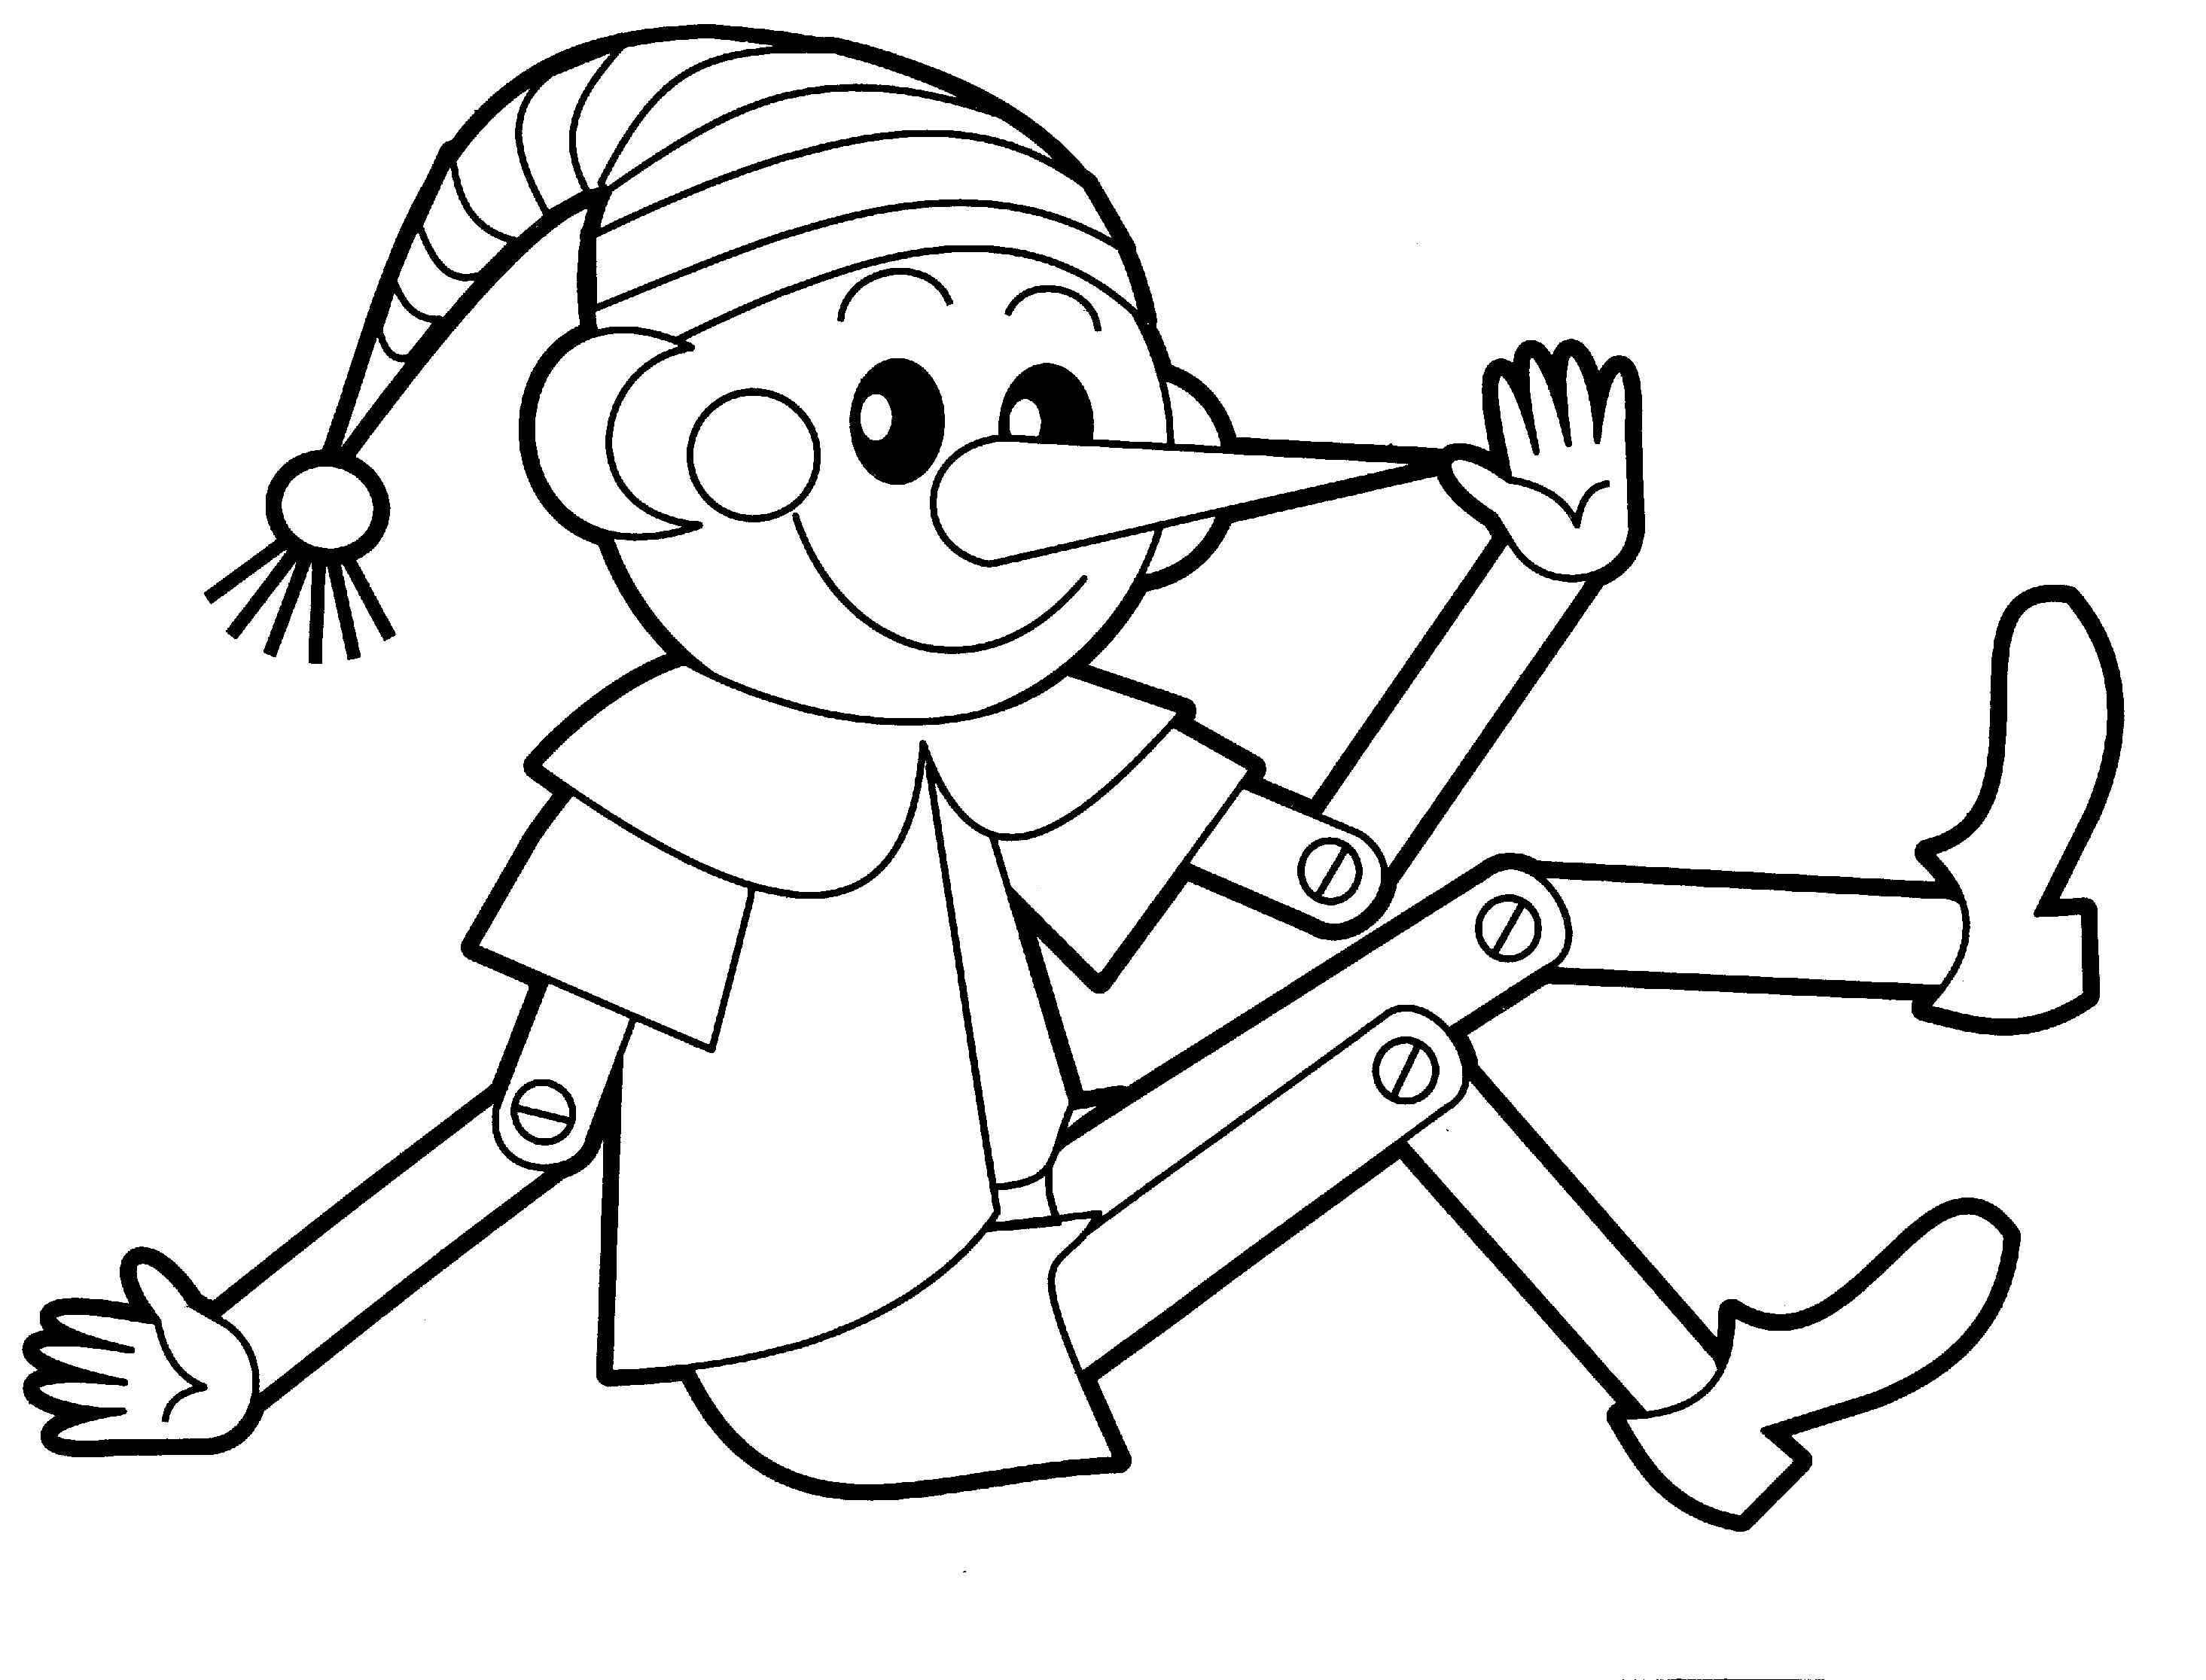 Toys coloring pages for babies Toy story coloring pages